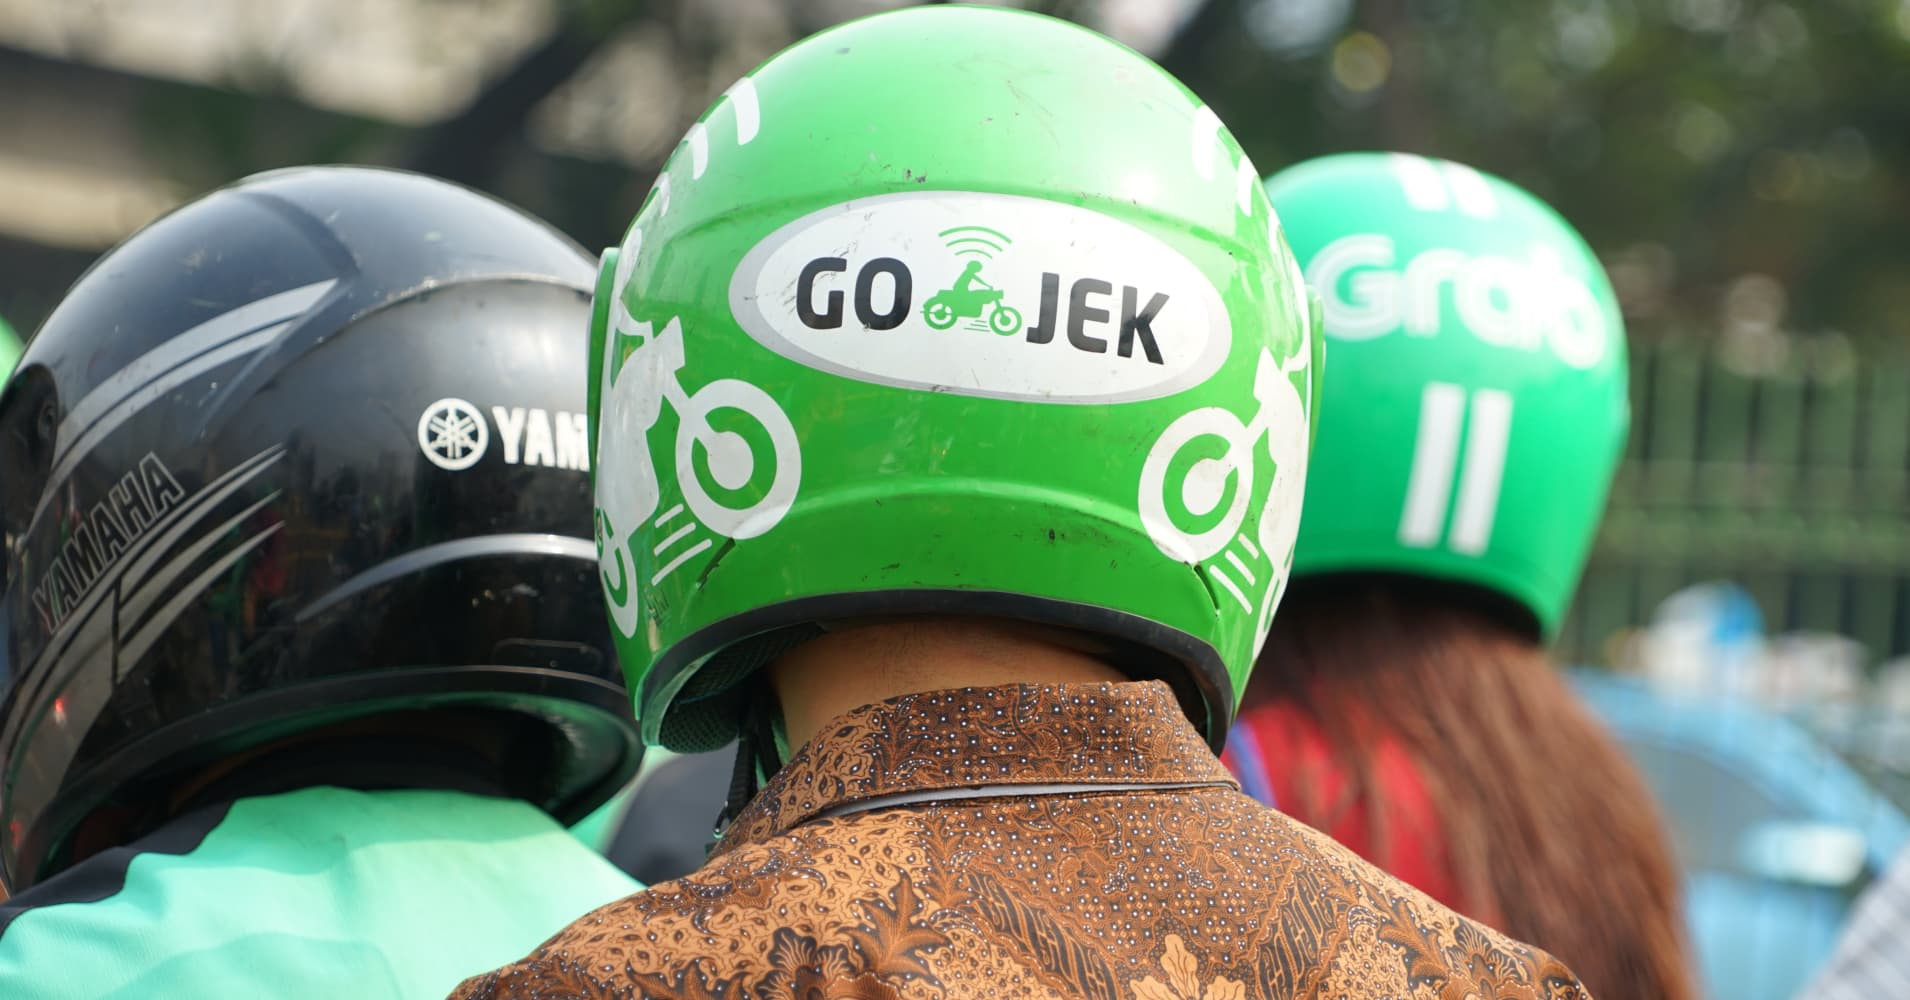 Indonesian ride-hailing firm Go-Jek hits big number with latest fundraising effort